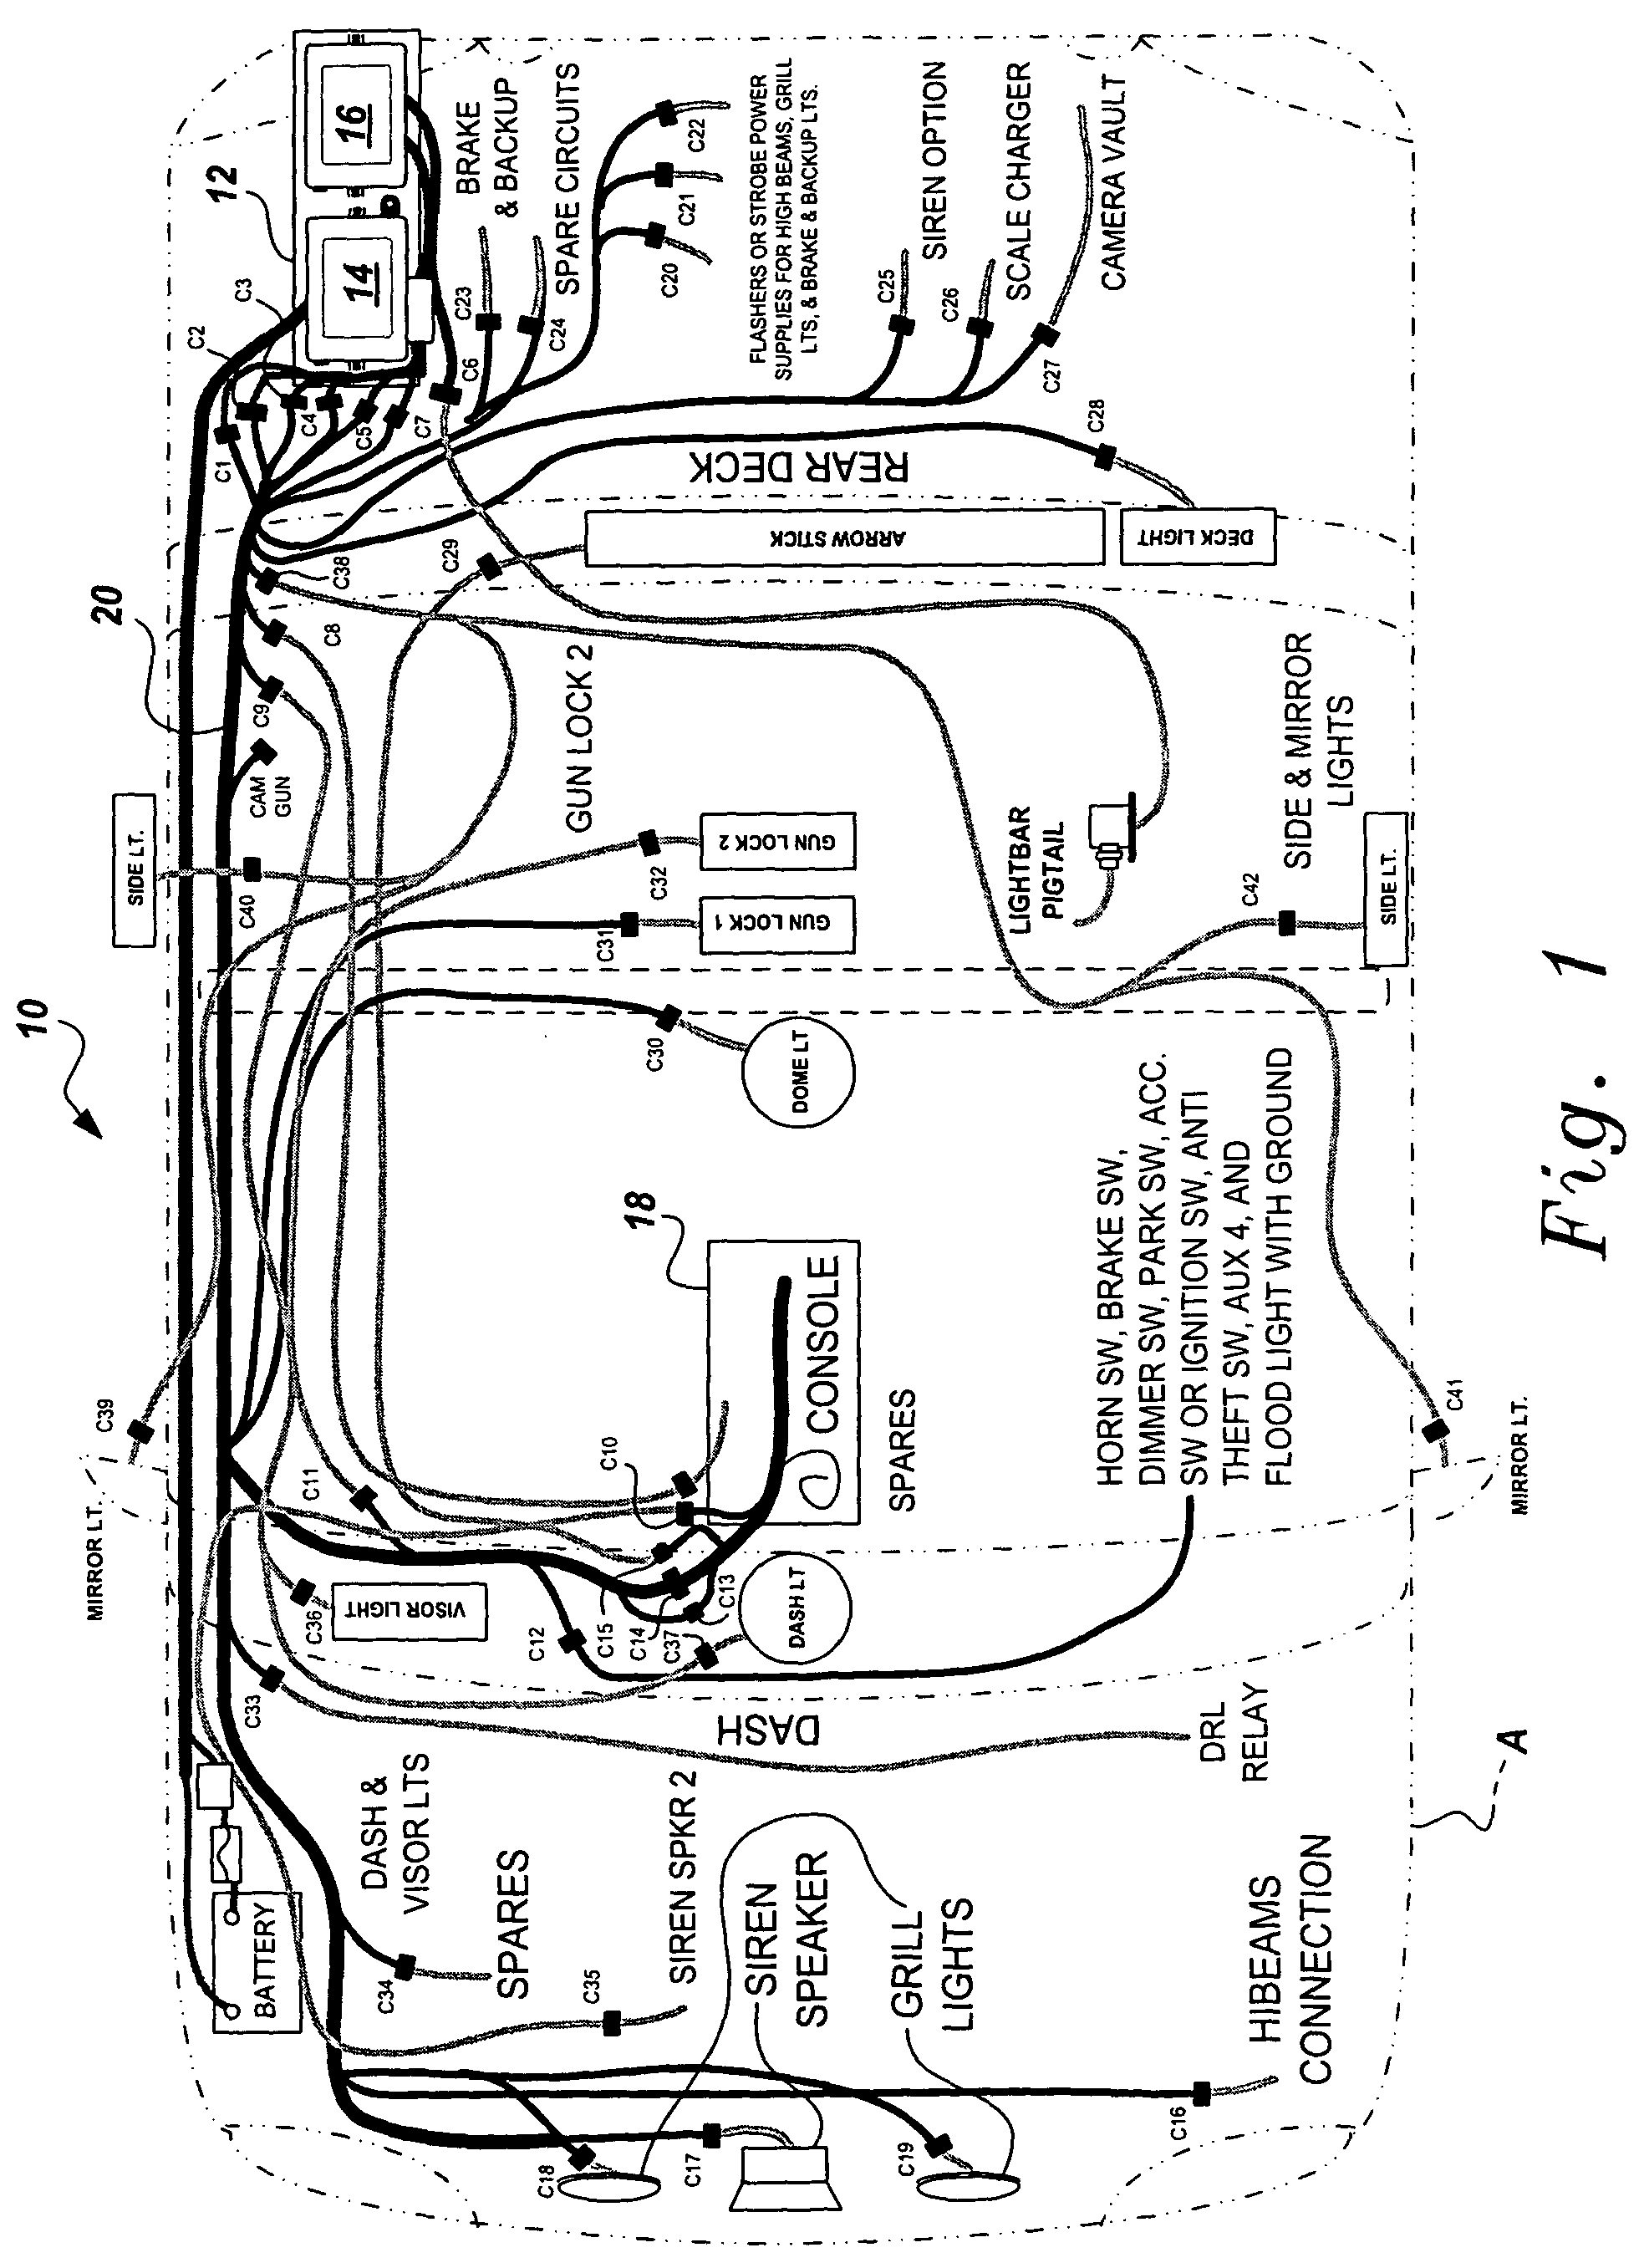 cat c wiring diagram cat wiring diagrams online cat c wiring diagram description patent drawing